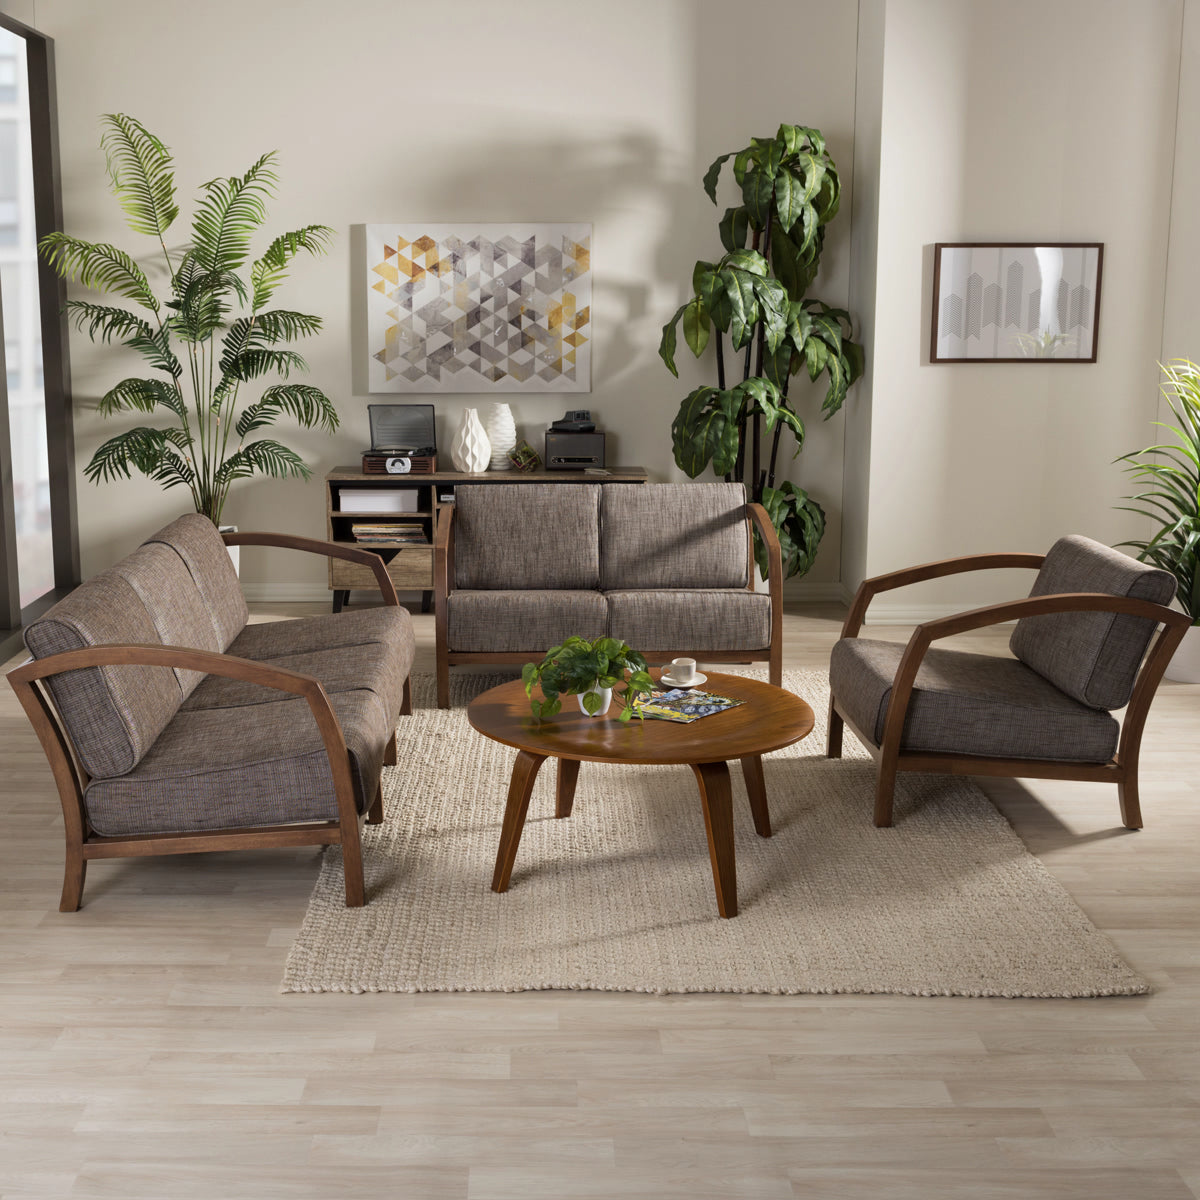 Baxton Studio Velda Modern and Contemporary Walnut Brown Wood and Gravel Multi Color Fabric 3-Piece Living Room Sofa, Loveseat and Lounge Chair Set Baxton Studio--Minimal And Modern - 1